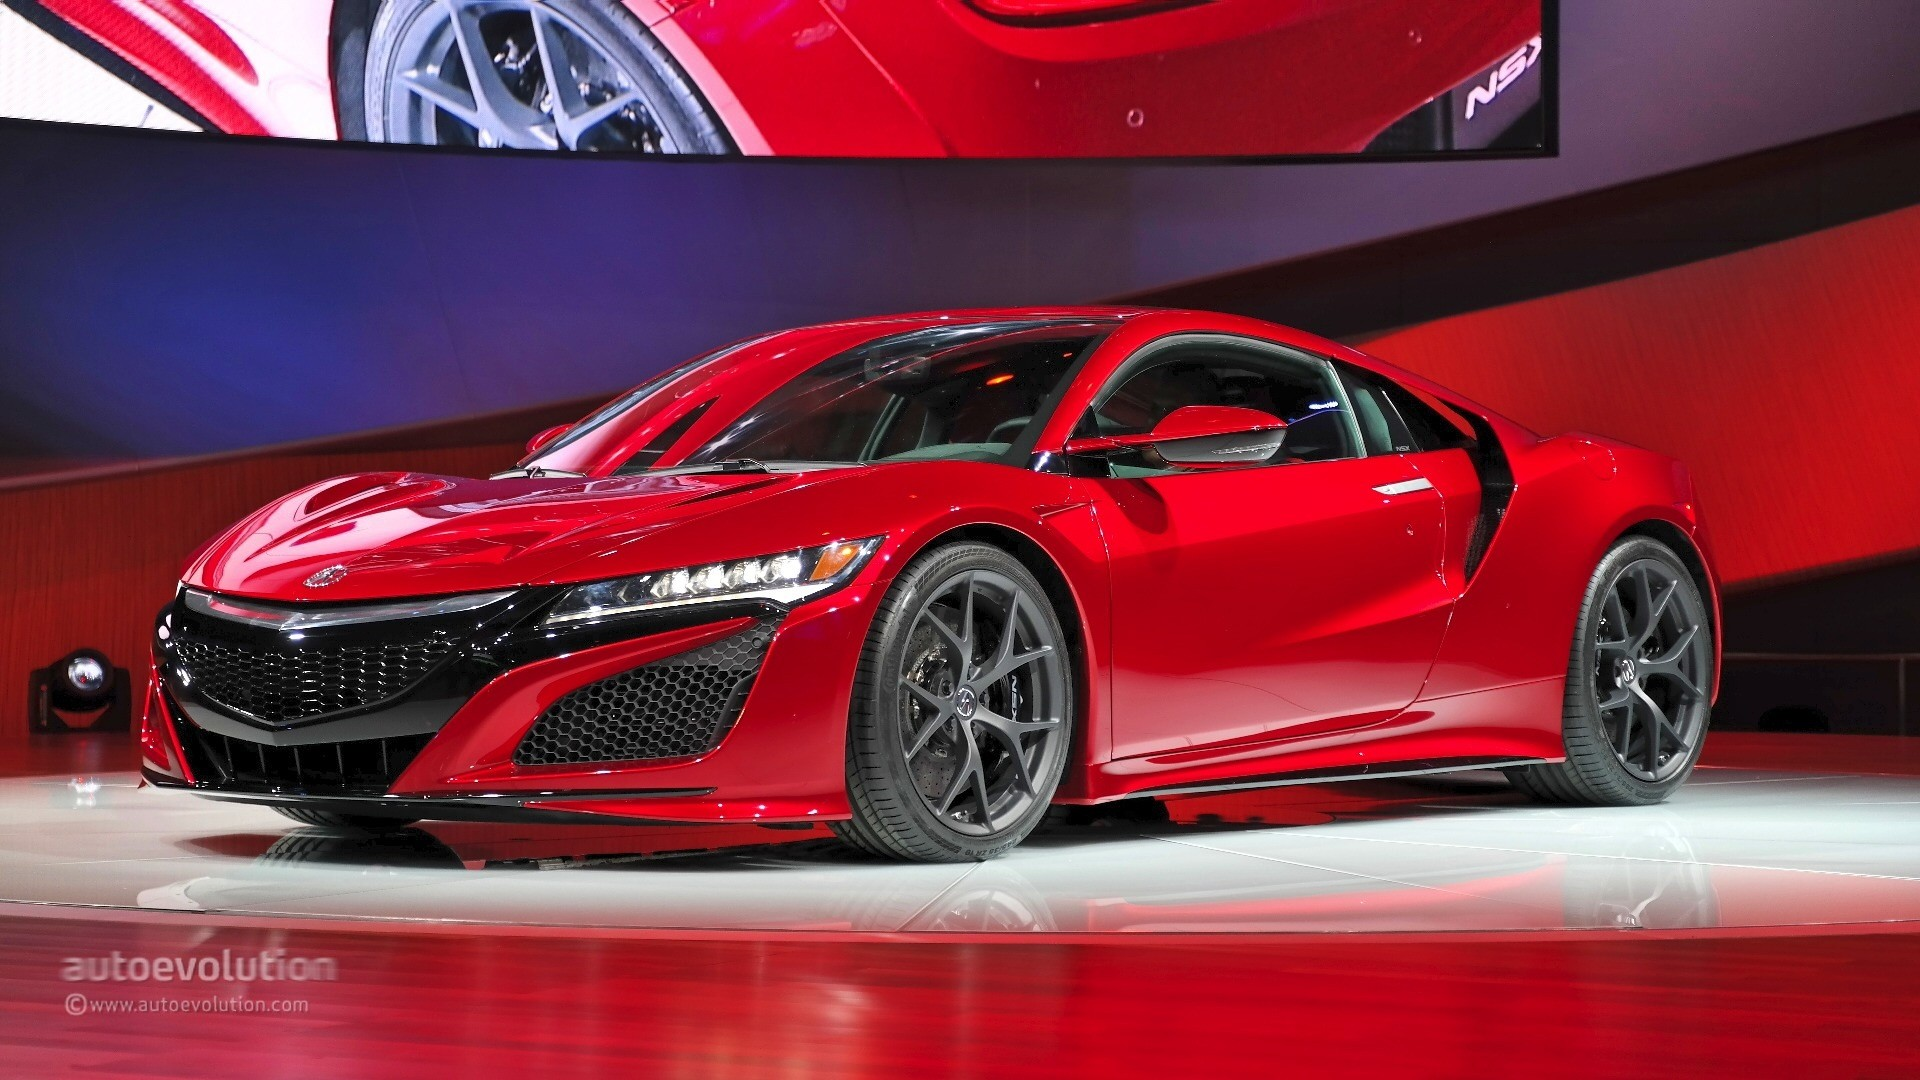 The 2017 Acura NSX Is a Little Overpriced, but Not as Much as You ...